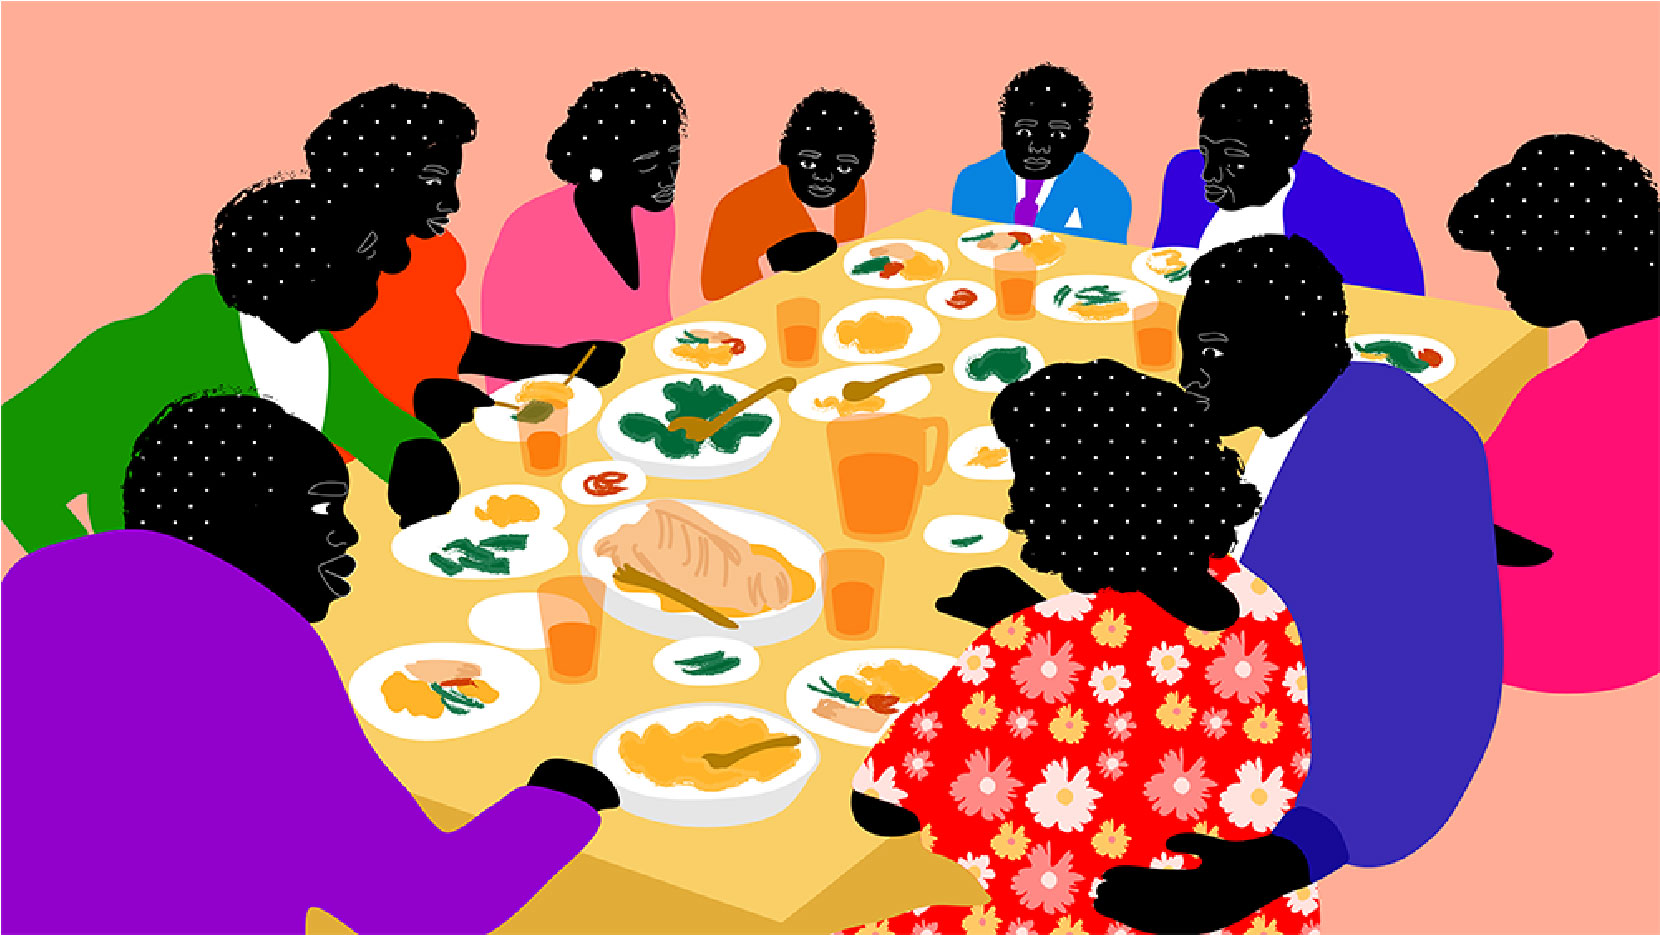 diner, together, group of people, eating, food, table, dining room